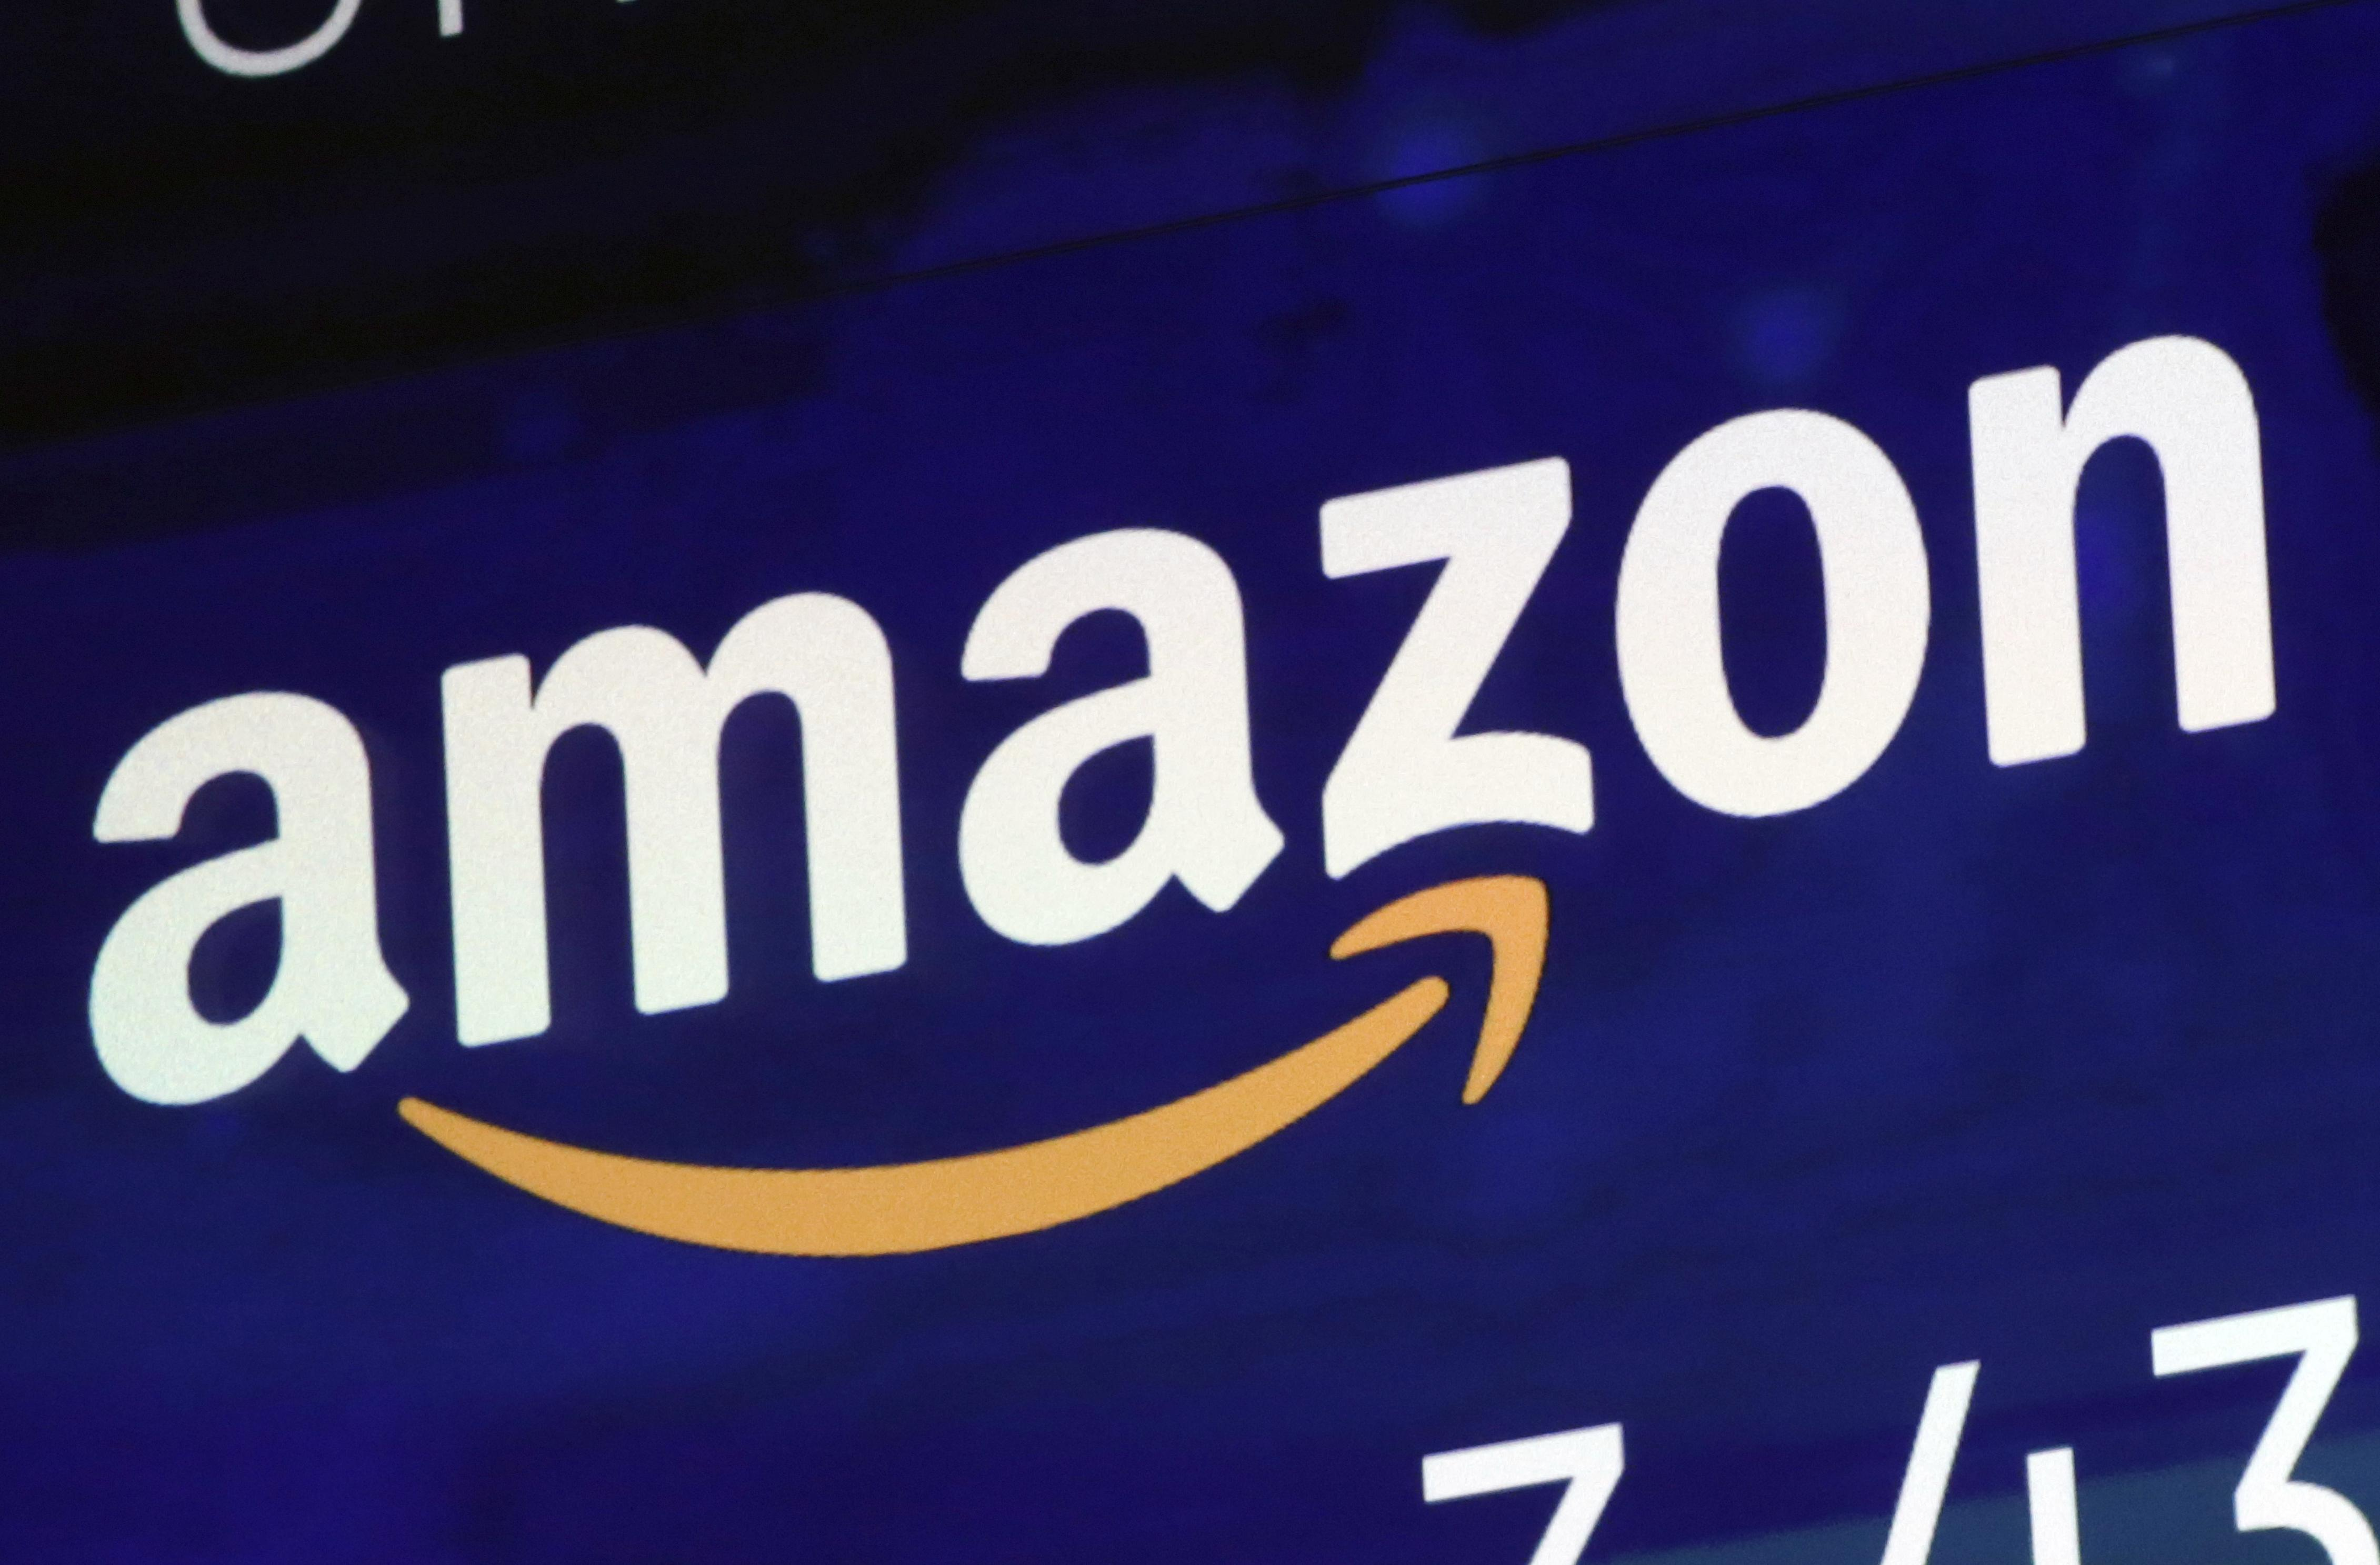 Amazon says 10 million items now qualify for one-day delivery | The